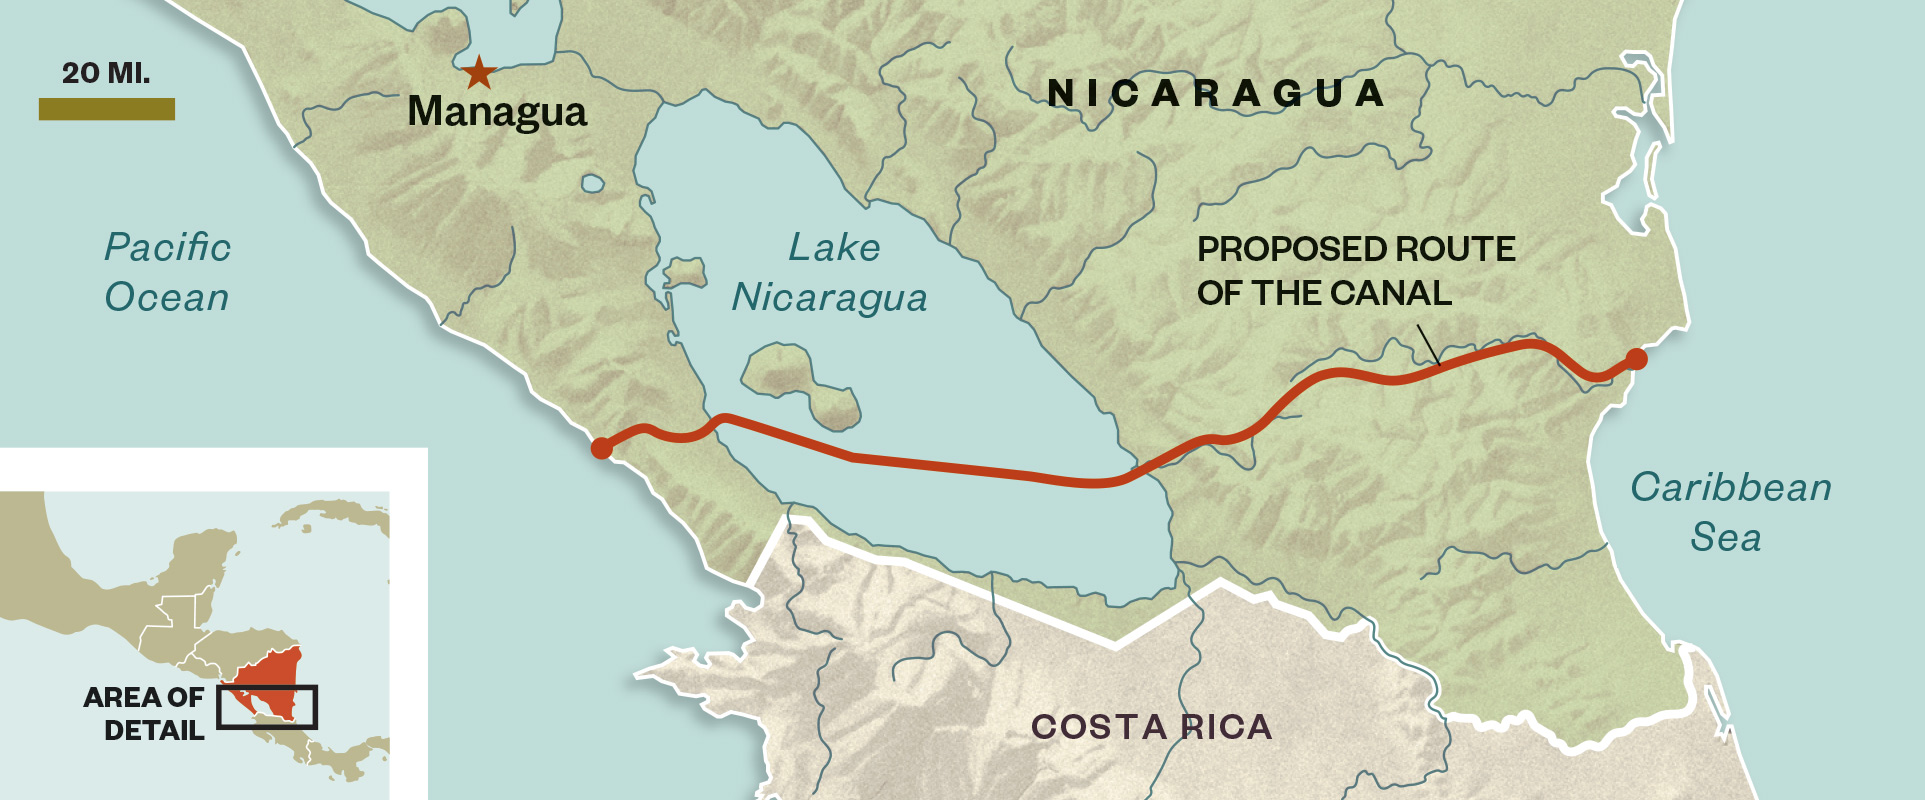 A New Canal Through Central America Could Have Devastating